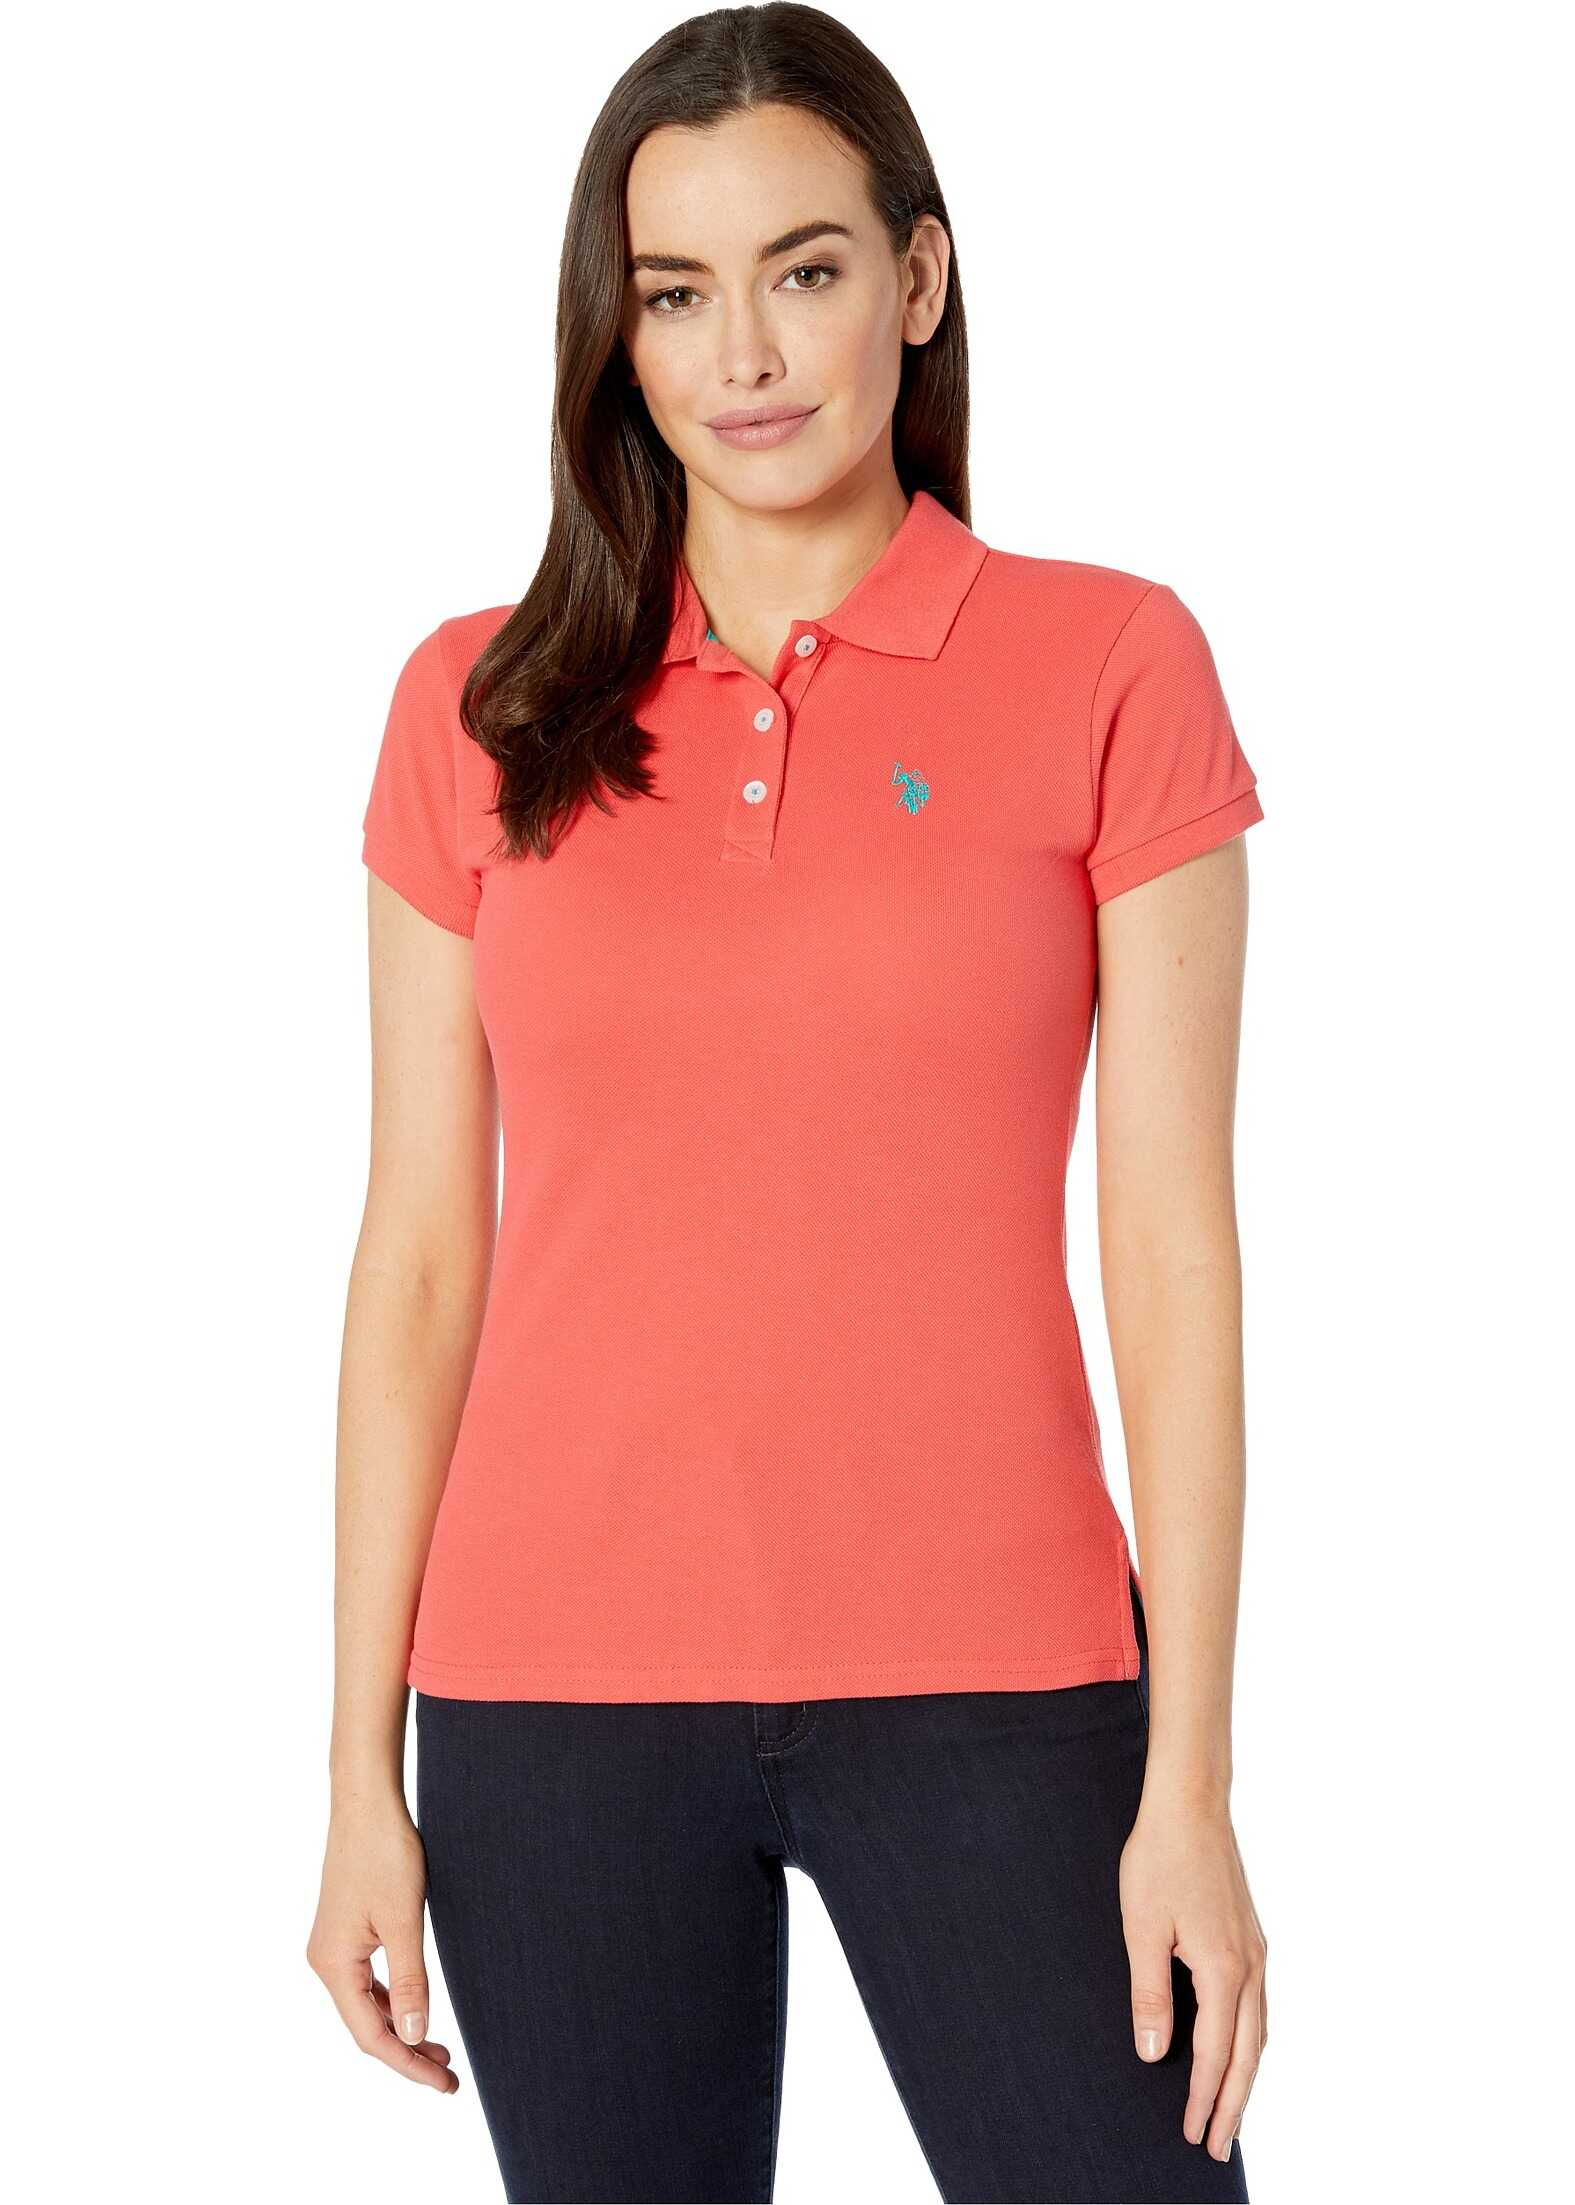 U.S. POLO ASSN. Solid Pique Polo Shirt Max Poppy